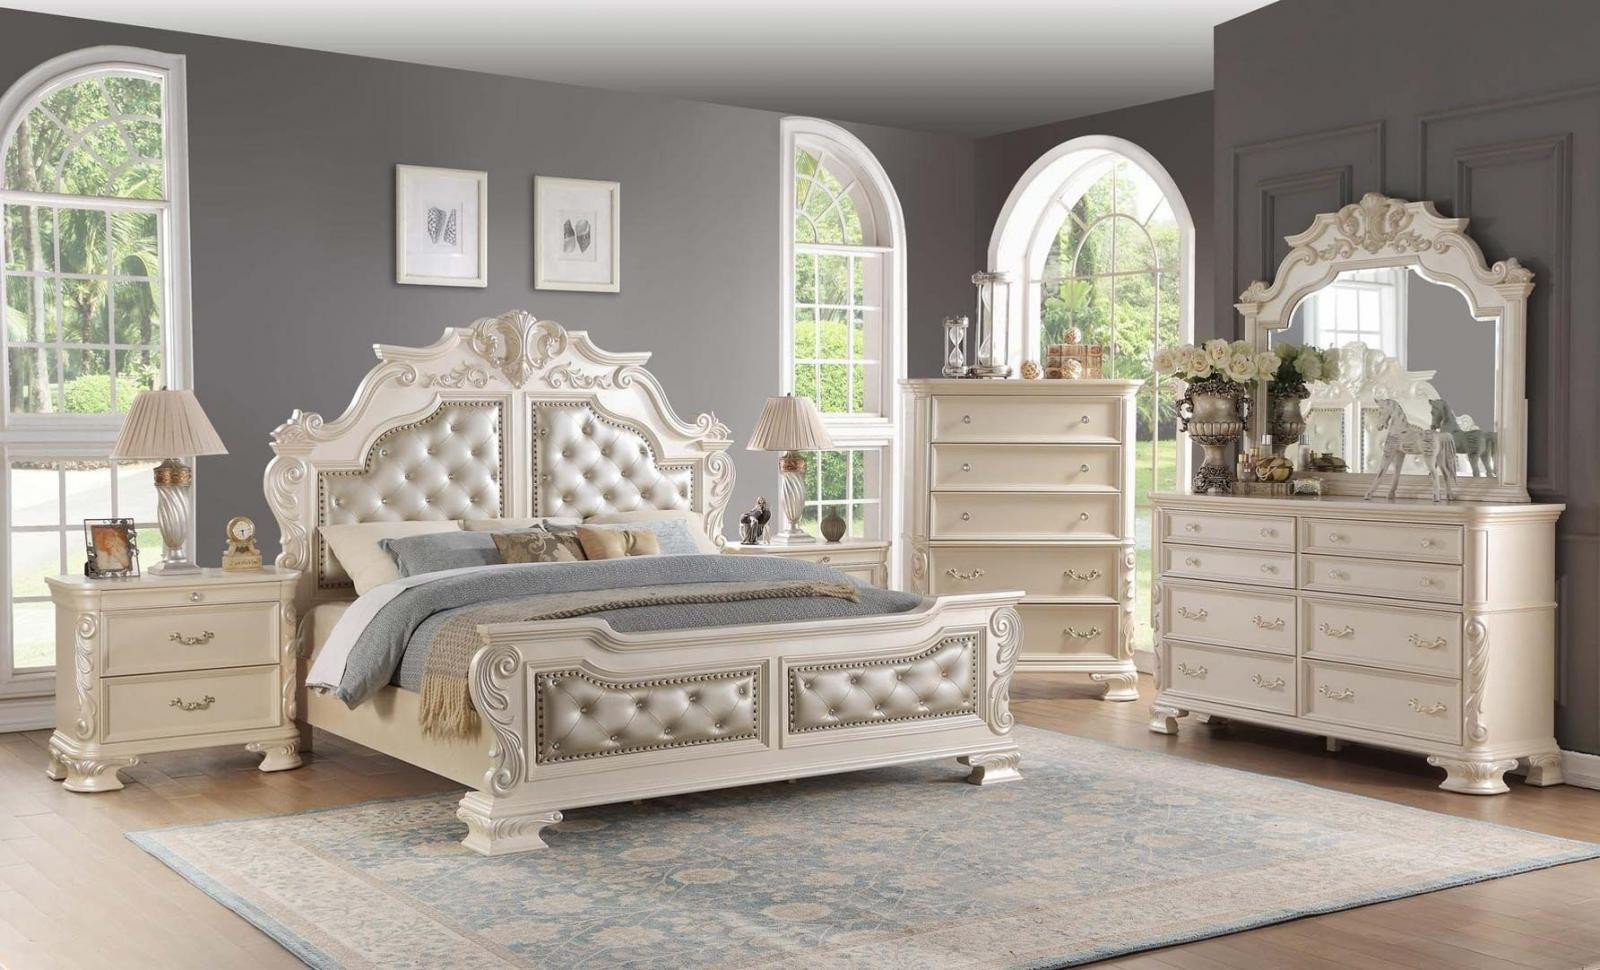 Traditional White Faux Leather Panel Bedroom Set 5 pcs Cosmos Furniture Victoria-Q-Set-5